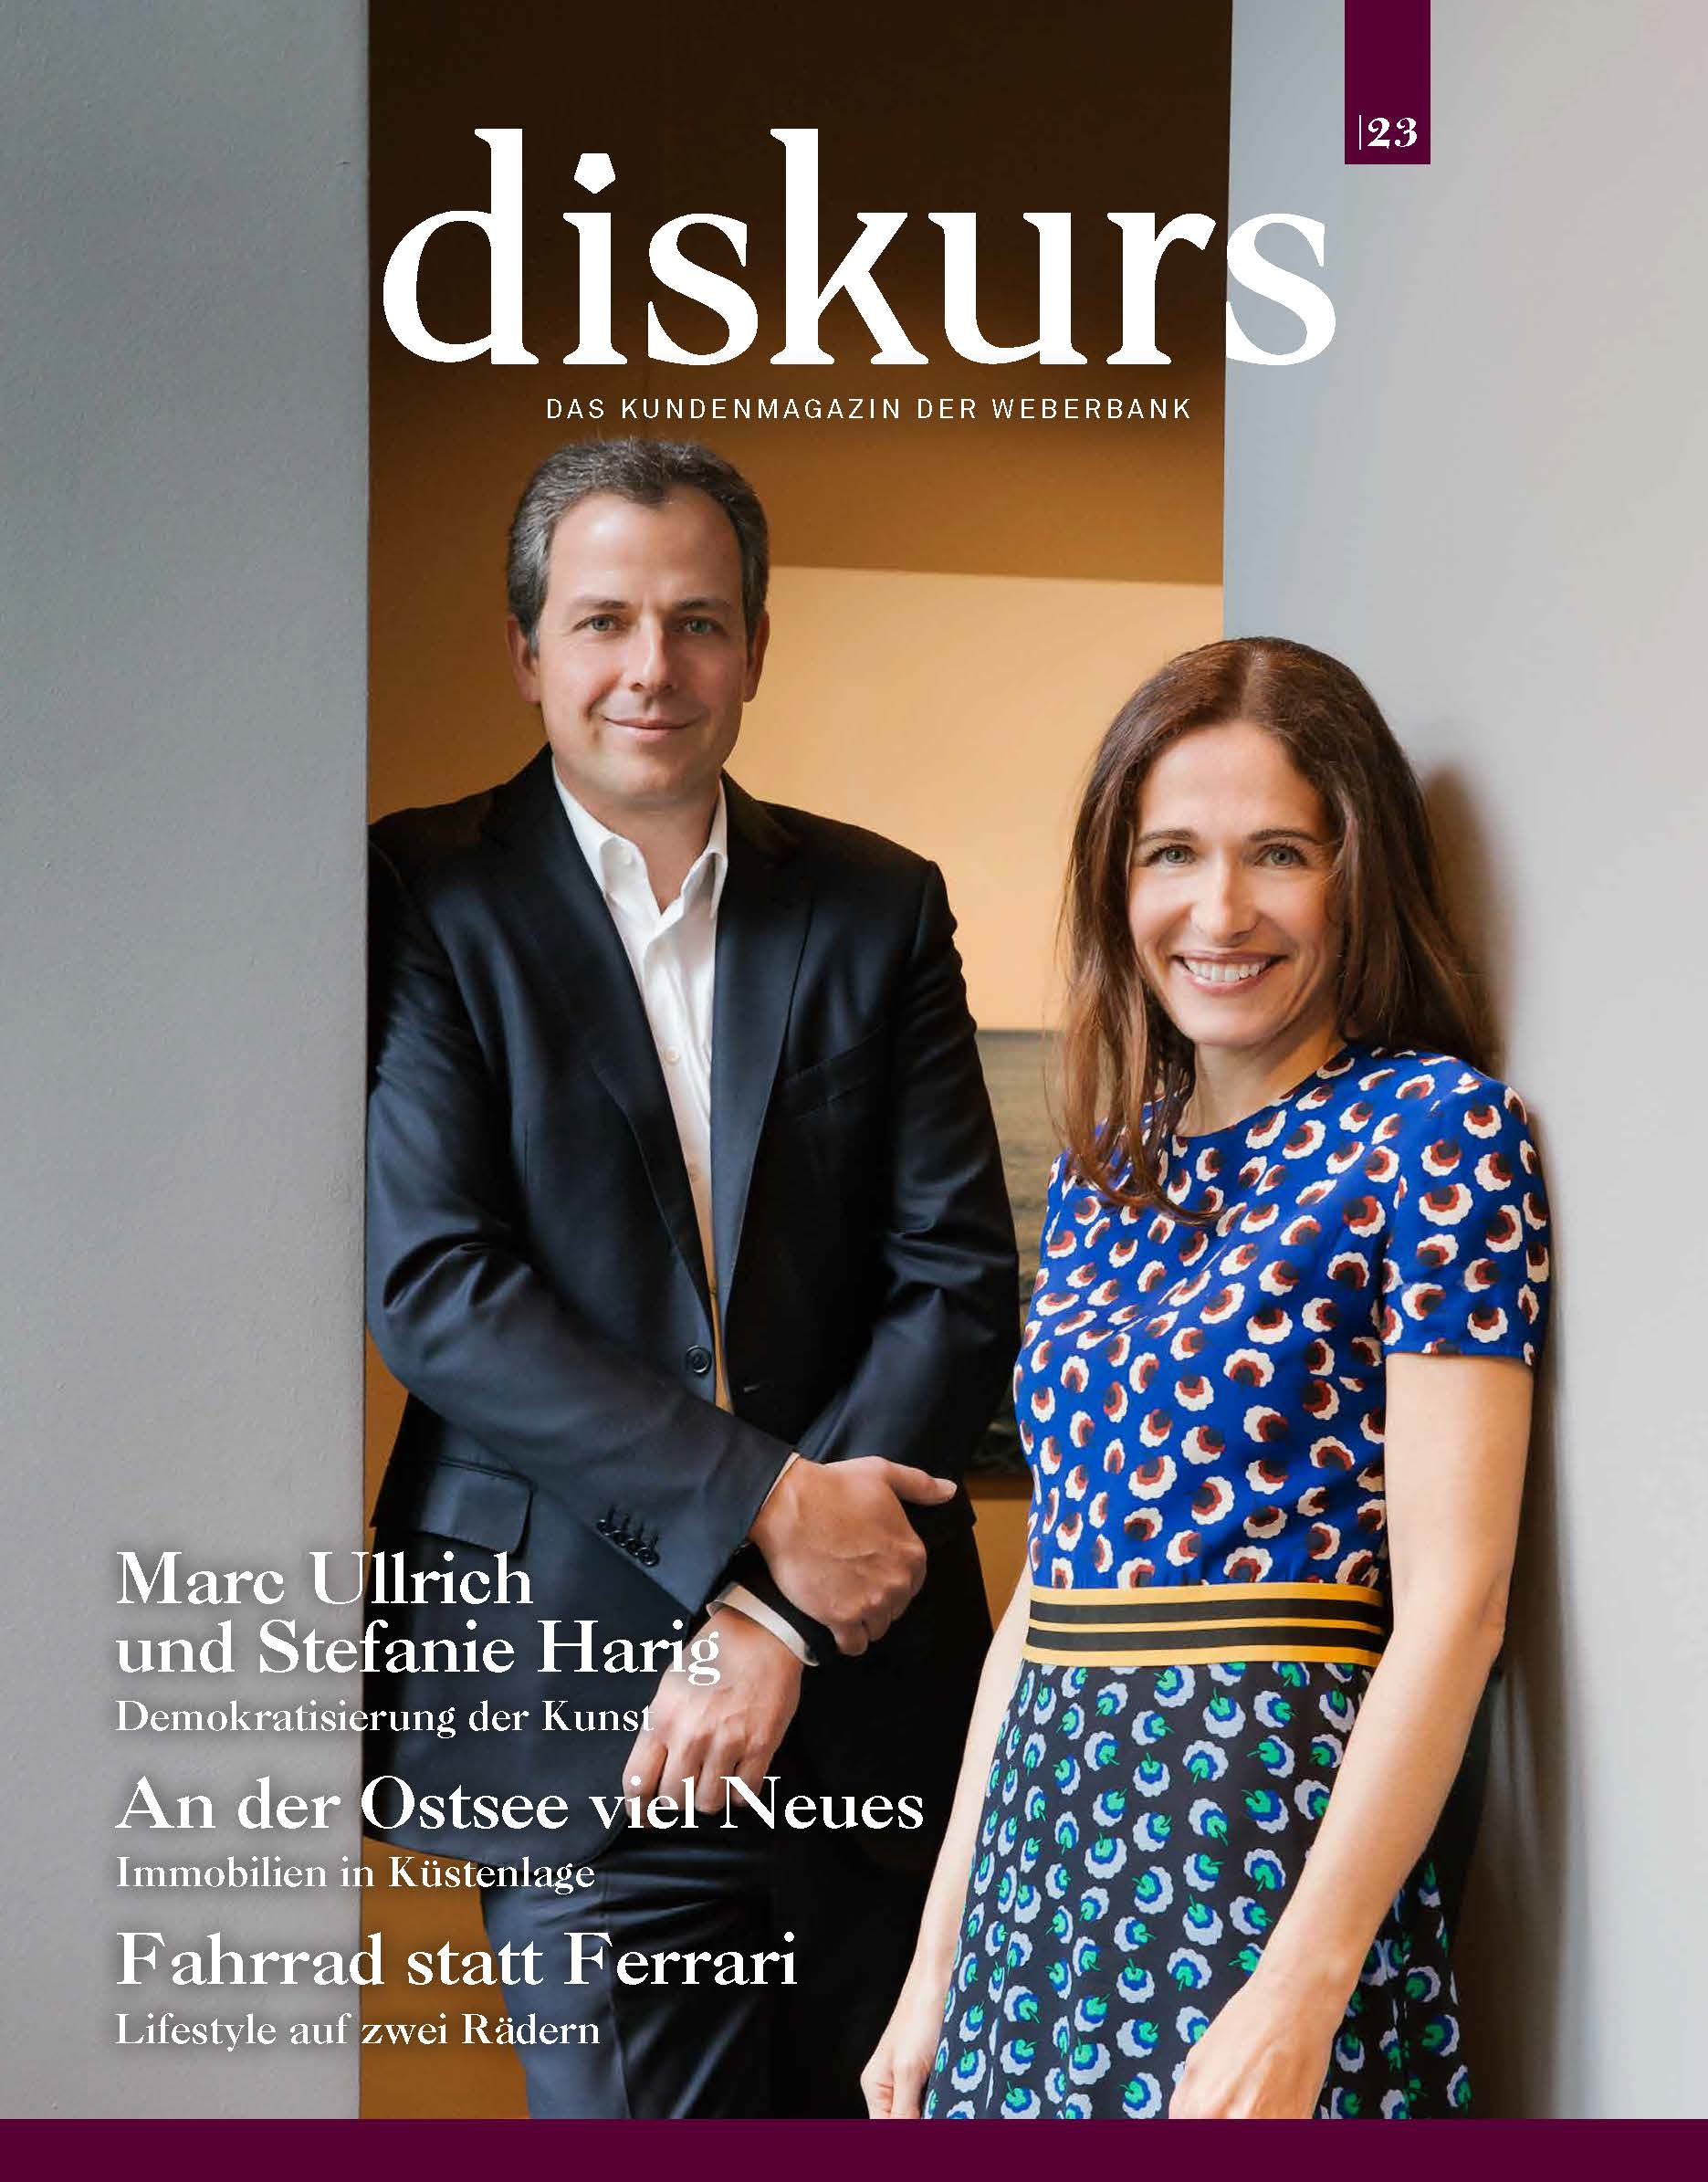 Diskurs Magazin No. 23